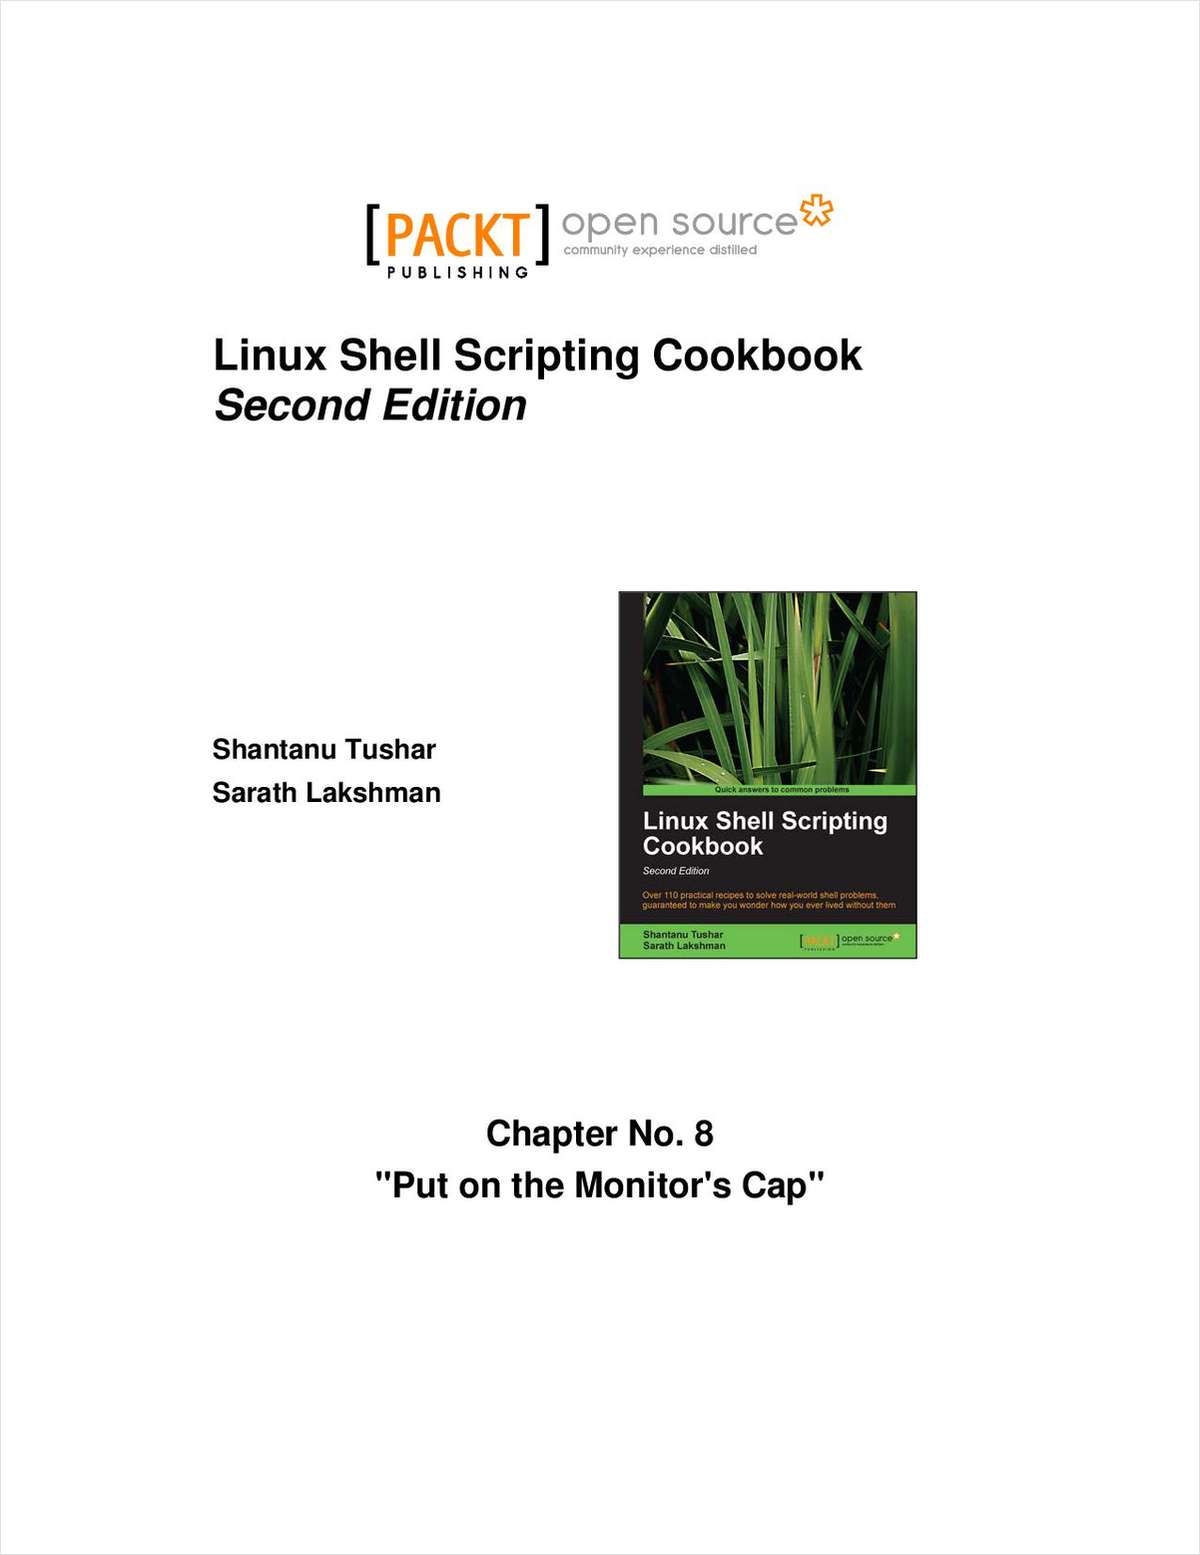 Linux Shell Scripting Cookbook, Second Edition--Free 40 Page Excerpt